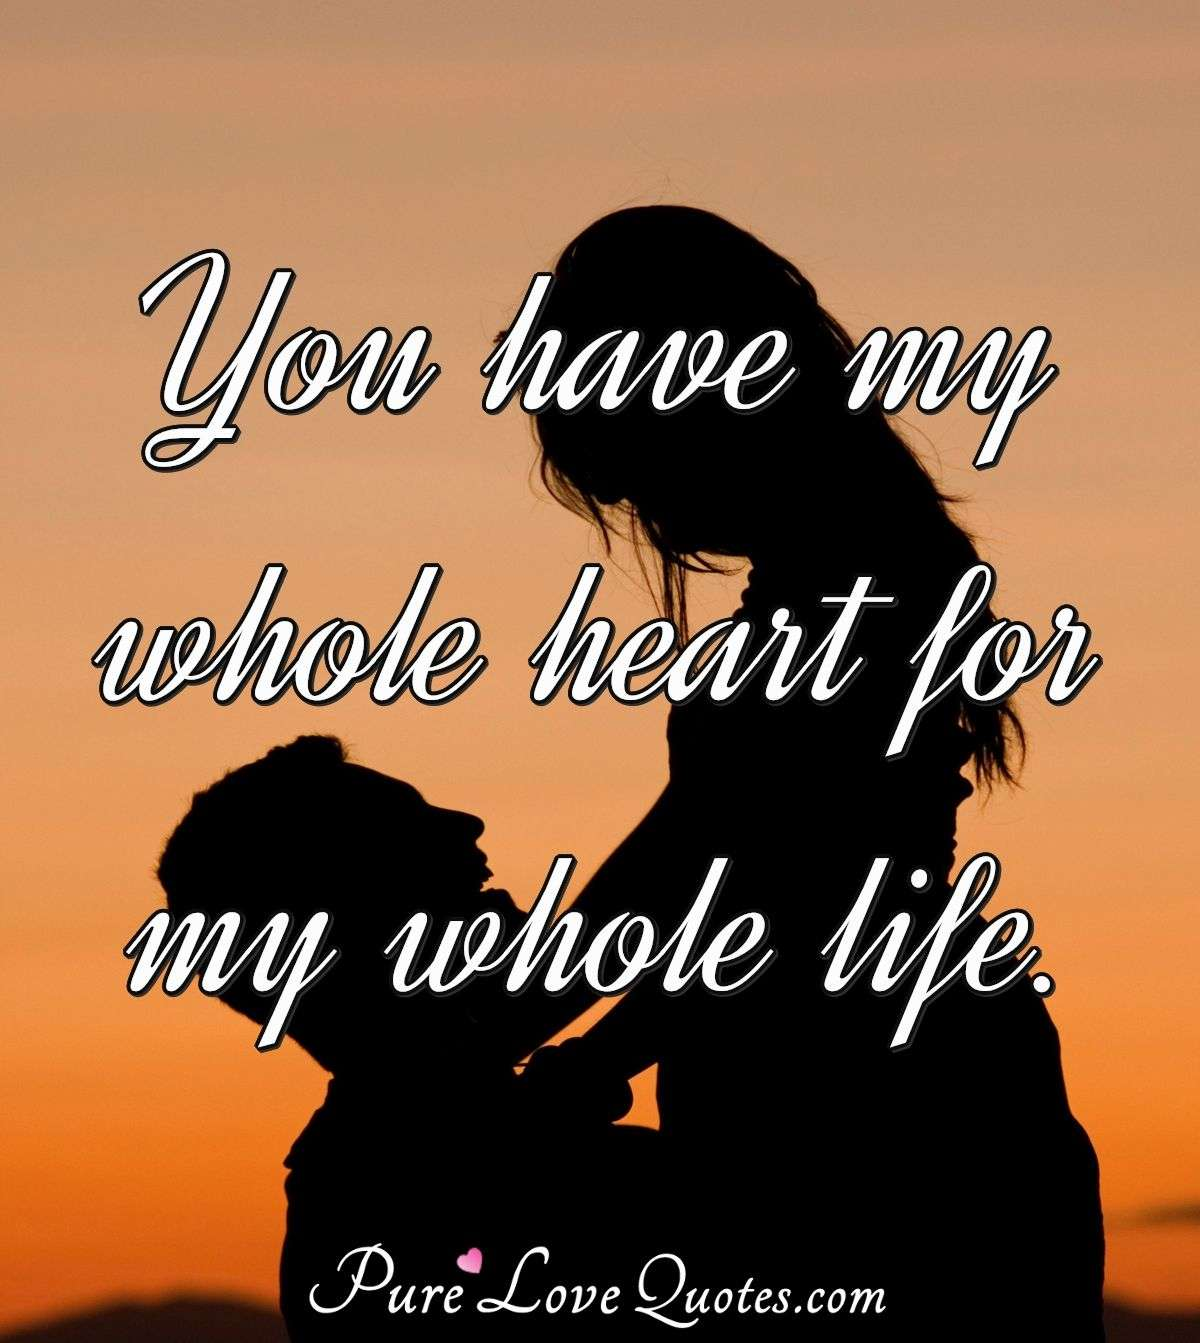 You have my whole heart for my whole life. - Anonymous